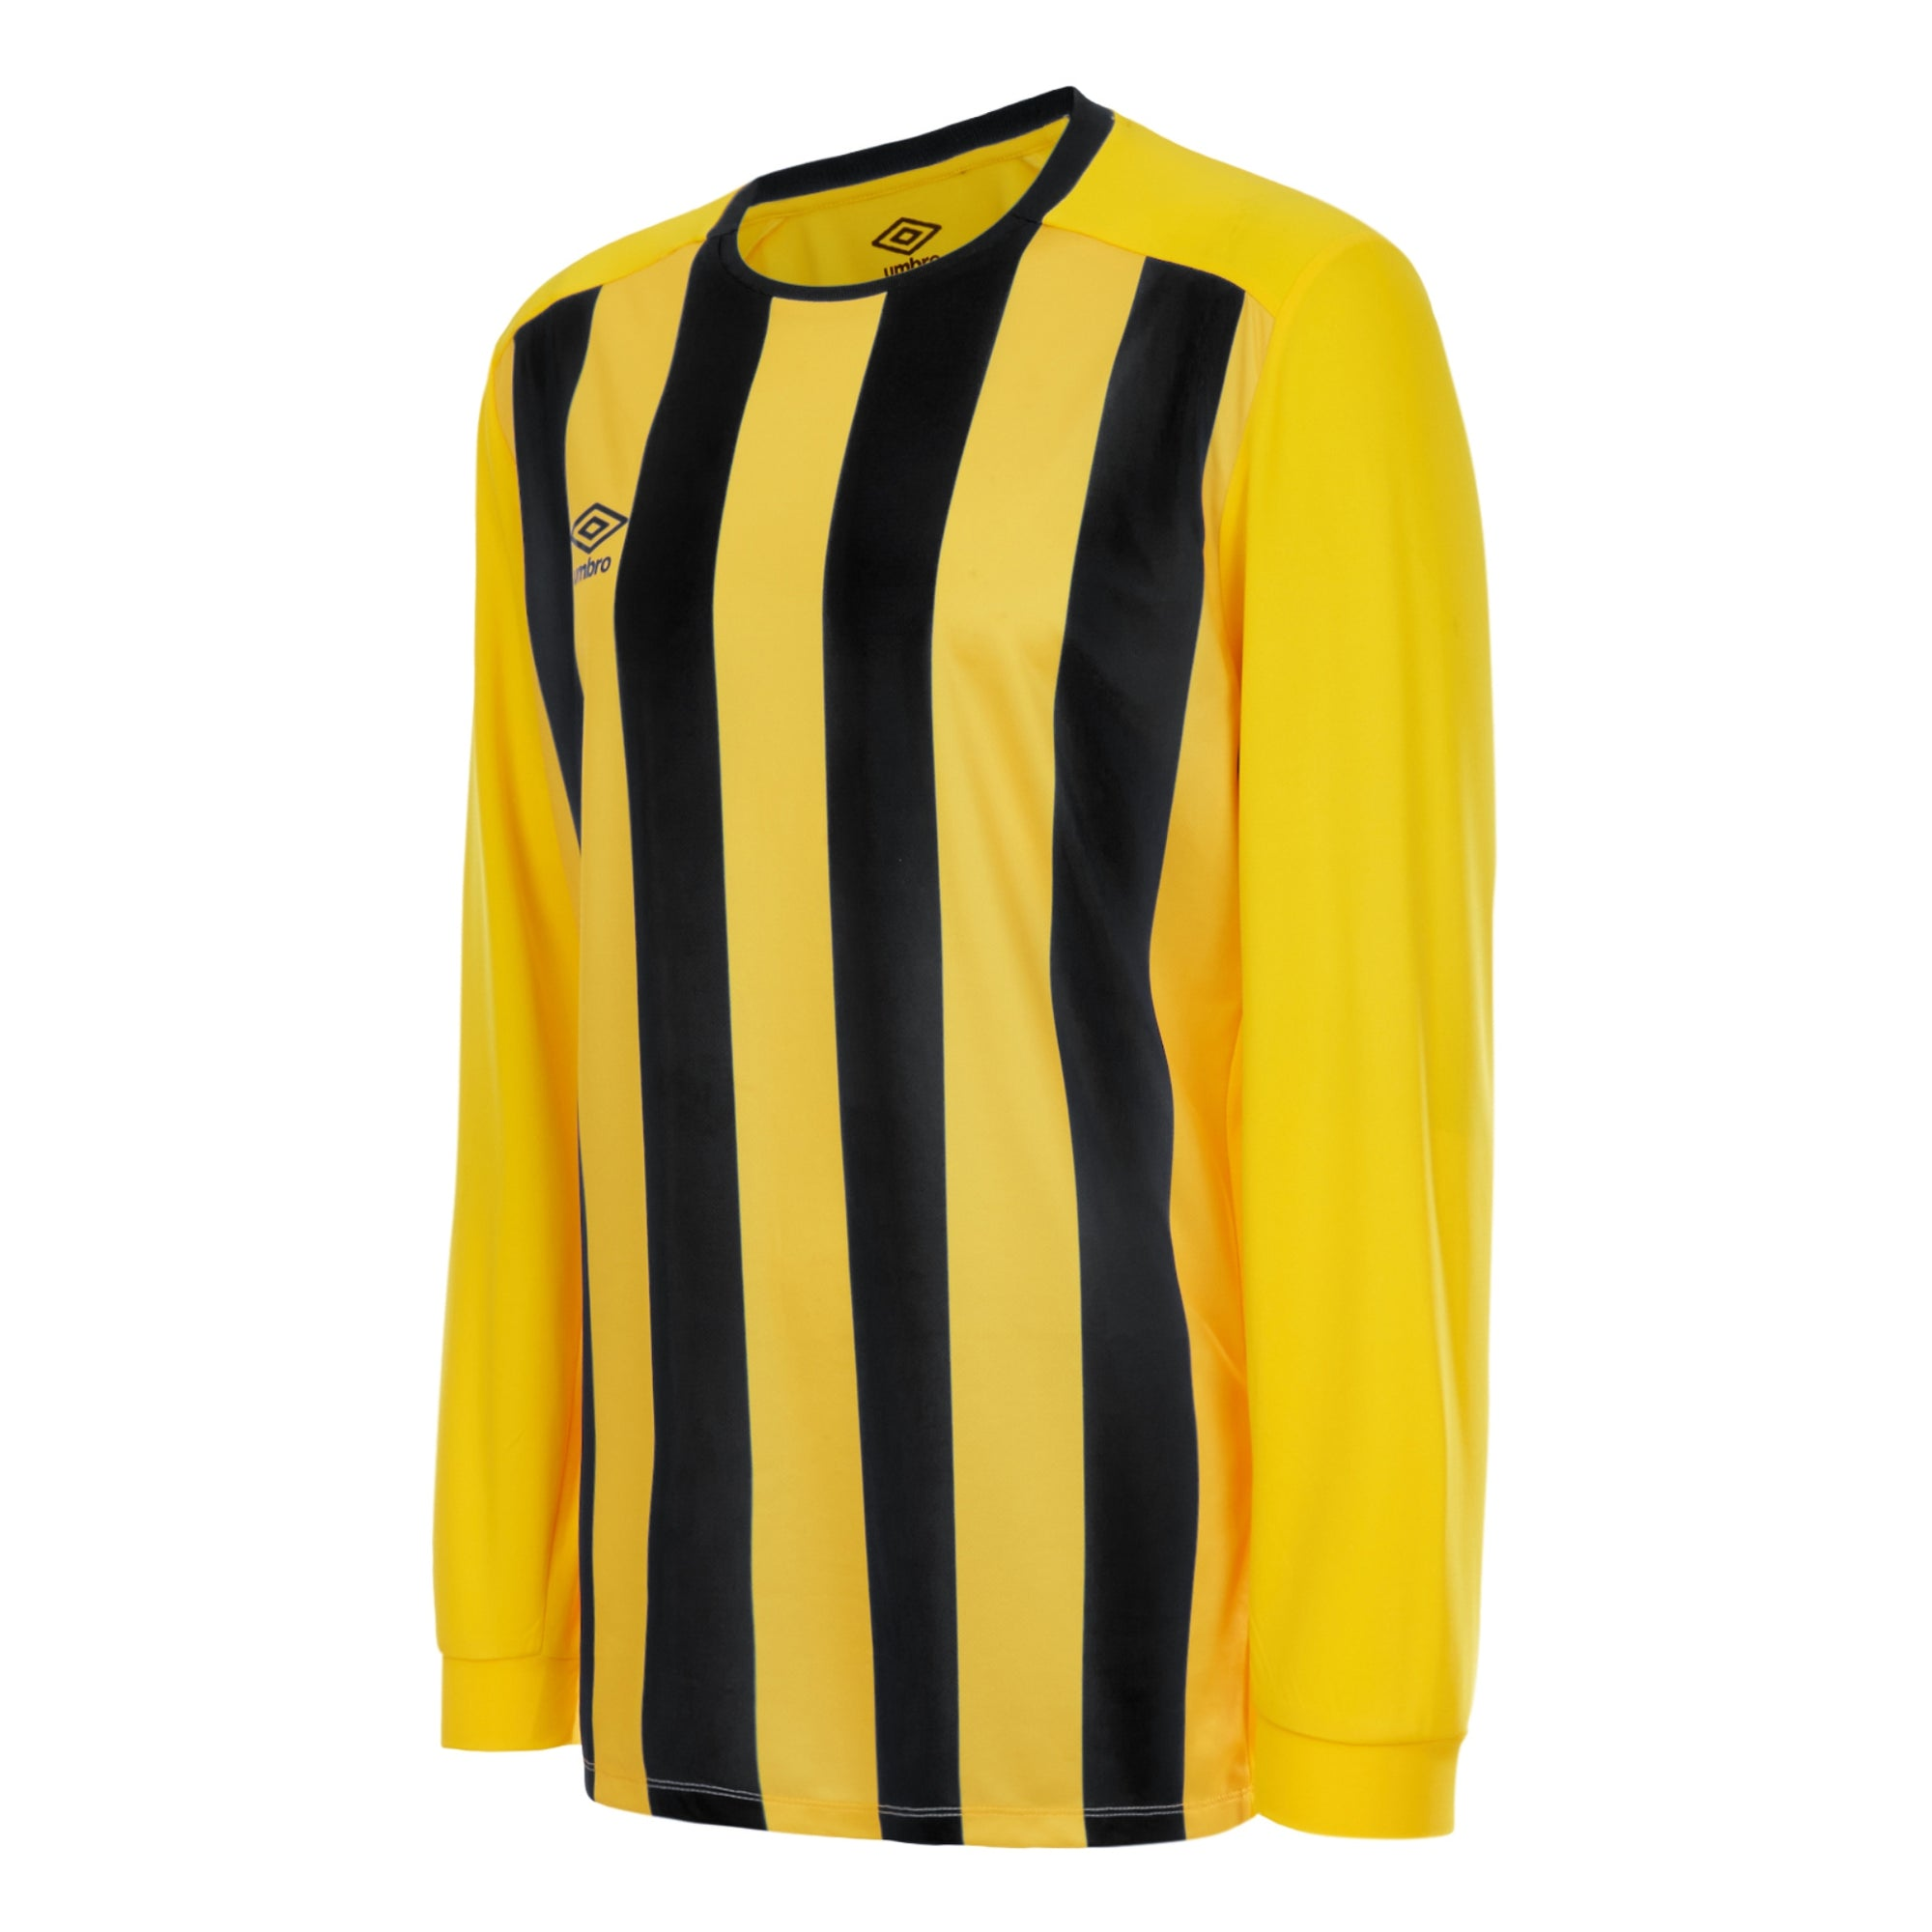 Umbro Milan Jersey LS - Yellow/Black